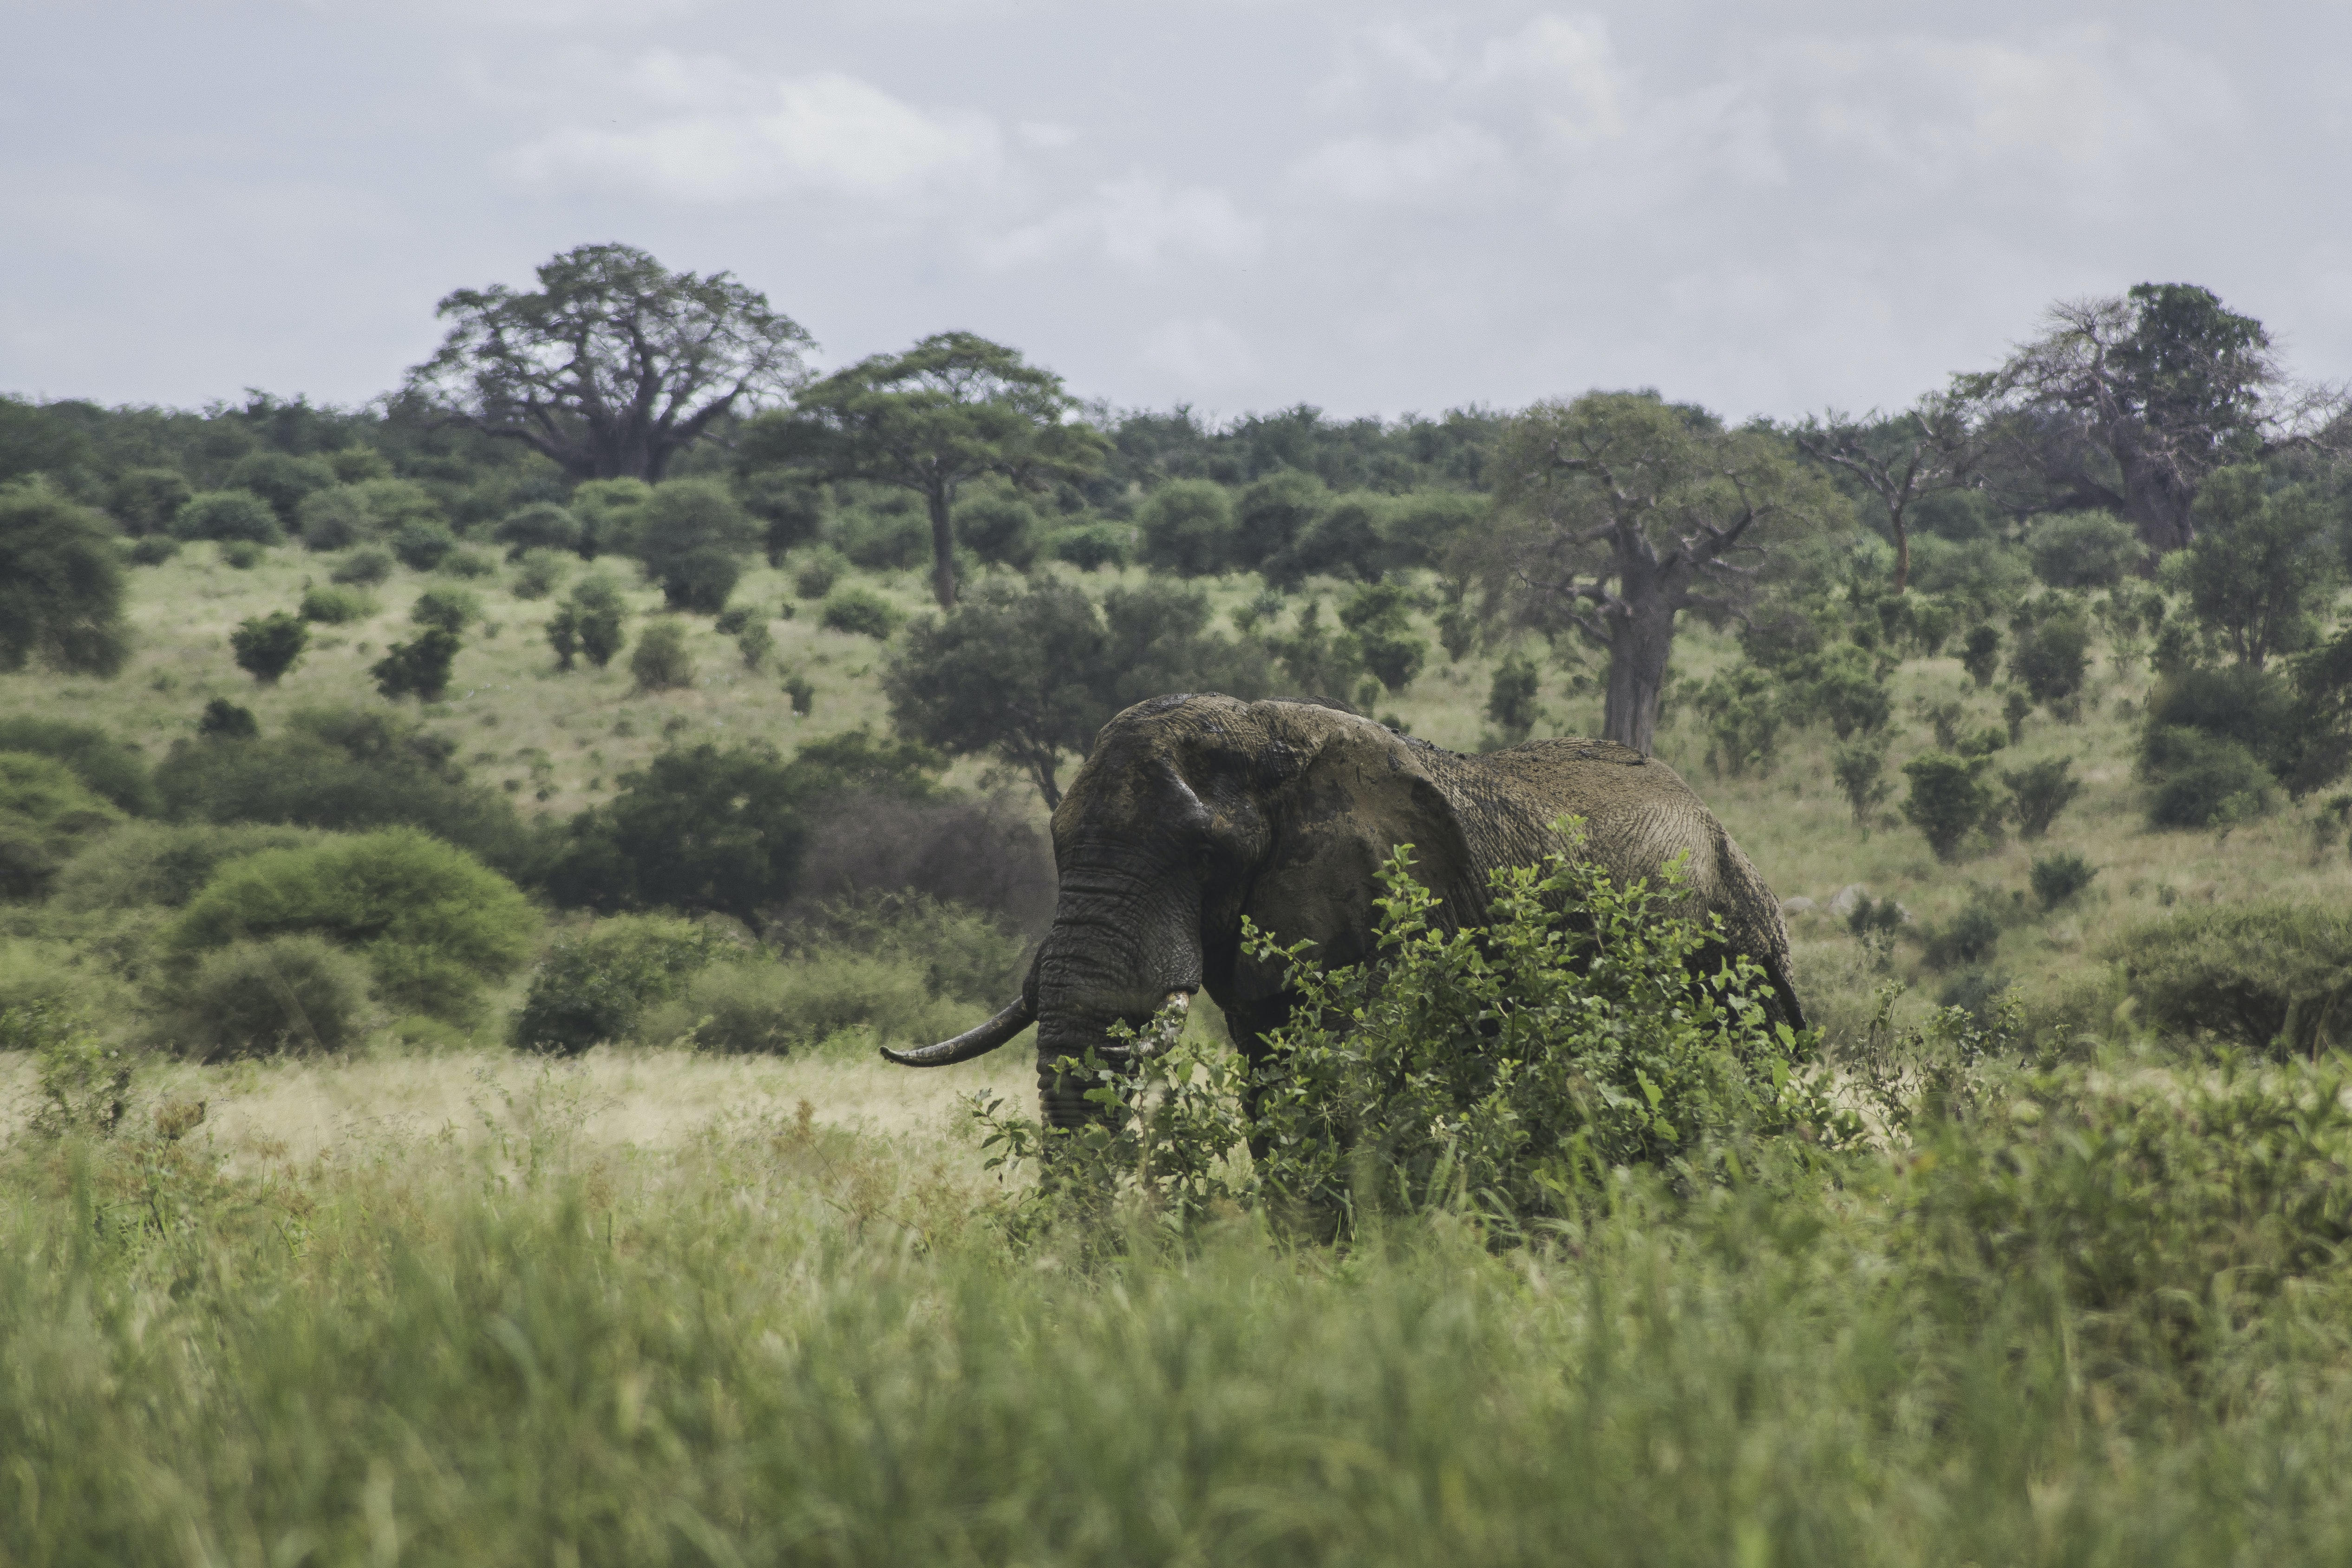 black elephant standing on green grass field under white clouds during daytime